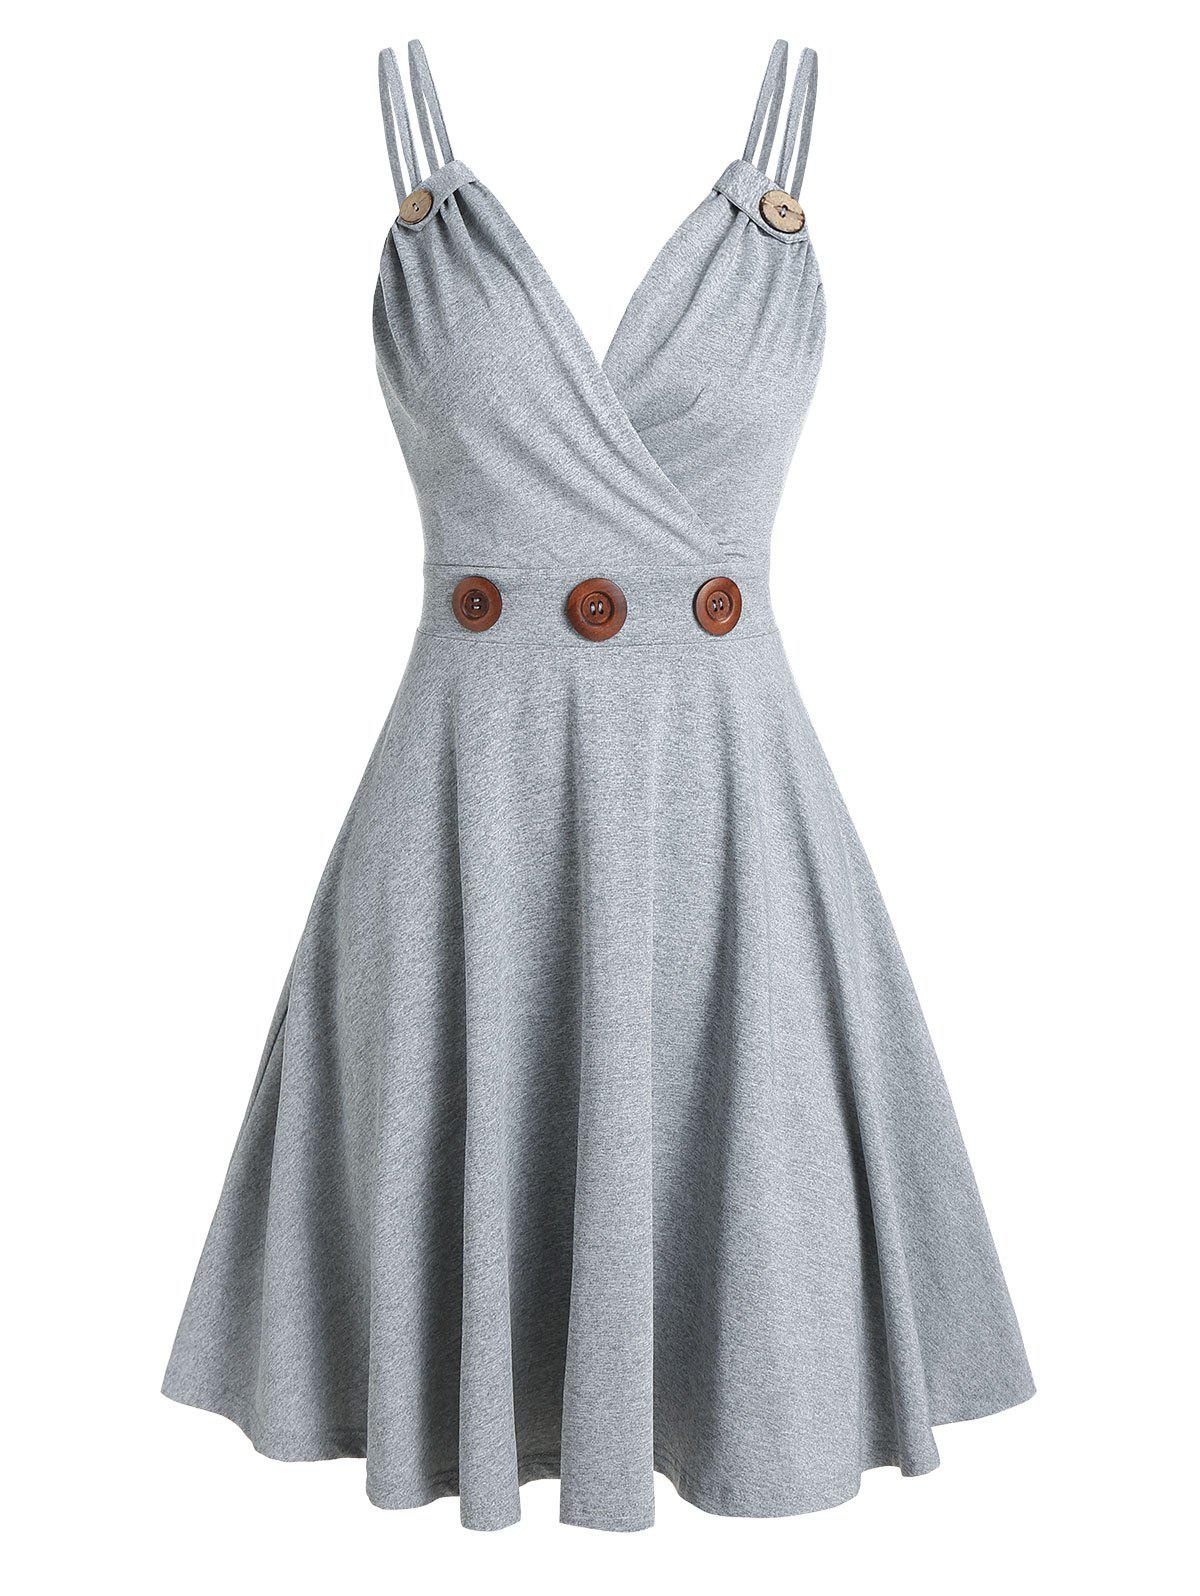 Strappy Mock Button Flare Dress - LIGHT GRAY S